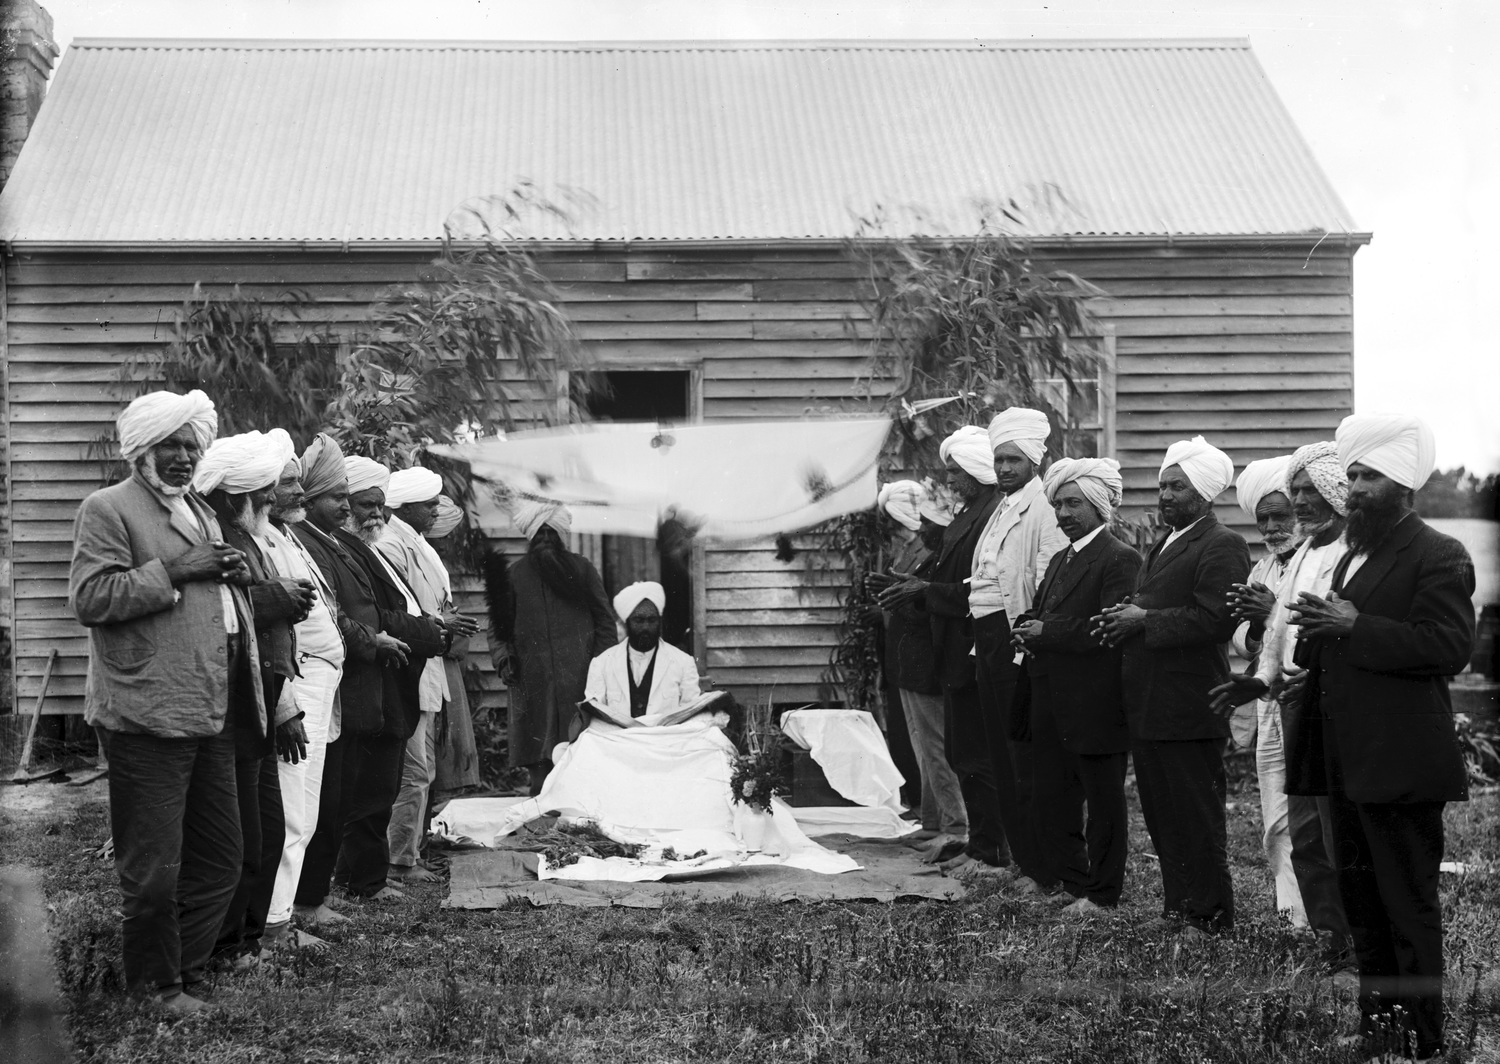 """Reference: """"A group of Indian men, possibly Sikhs, outside a timber cottage at Reef Hills near Benalla,"""" W. J. Howship collection, University of Melbourne Archives, 1988.0137.00704"""